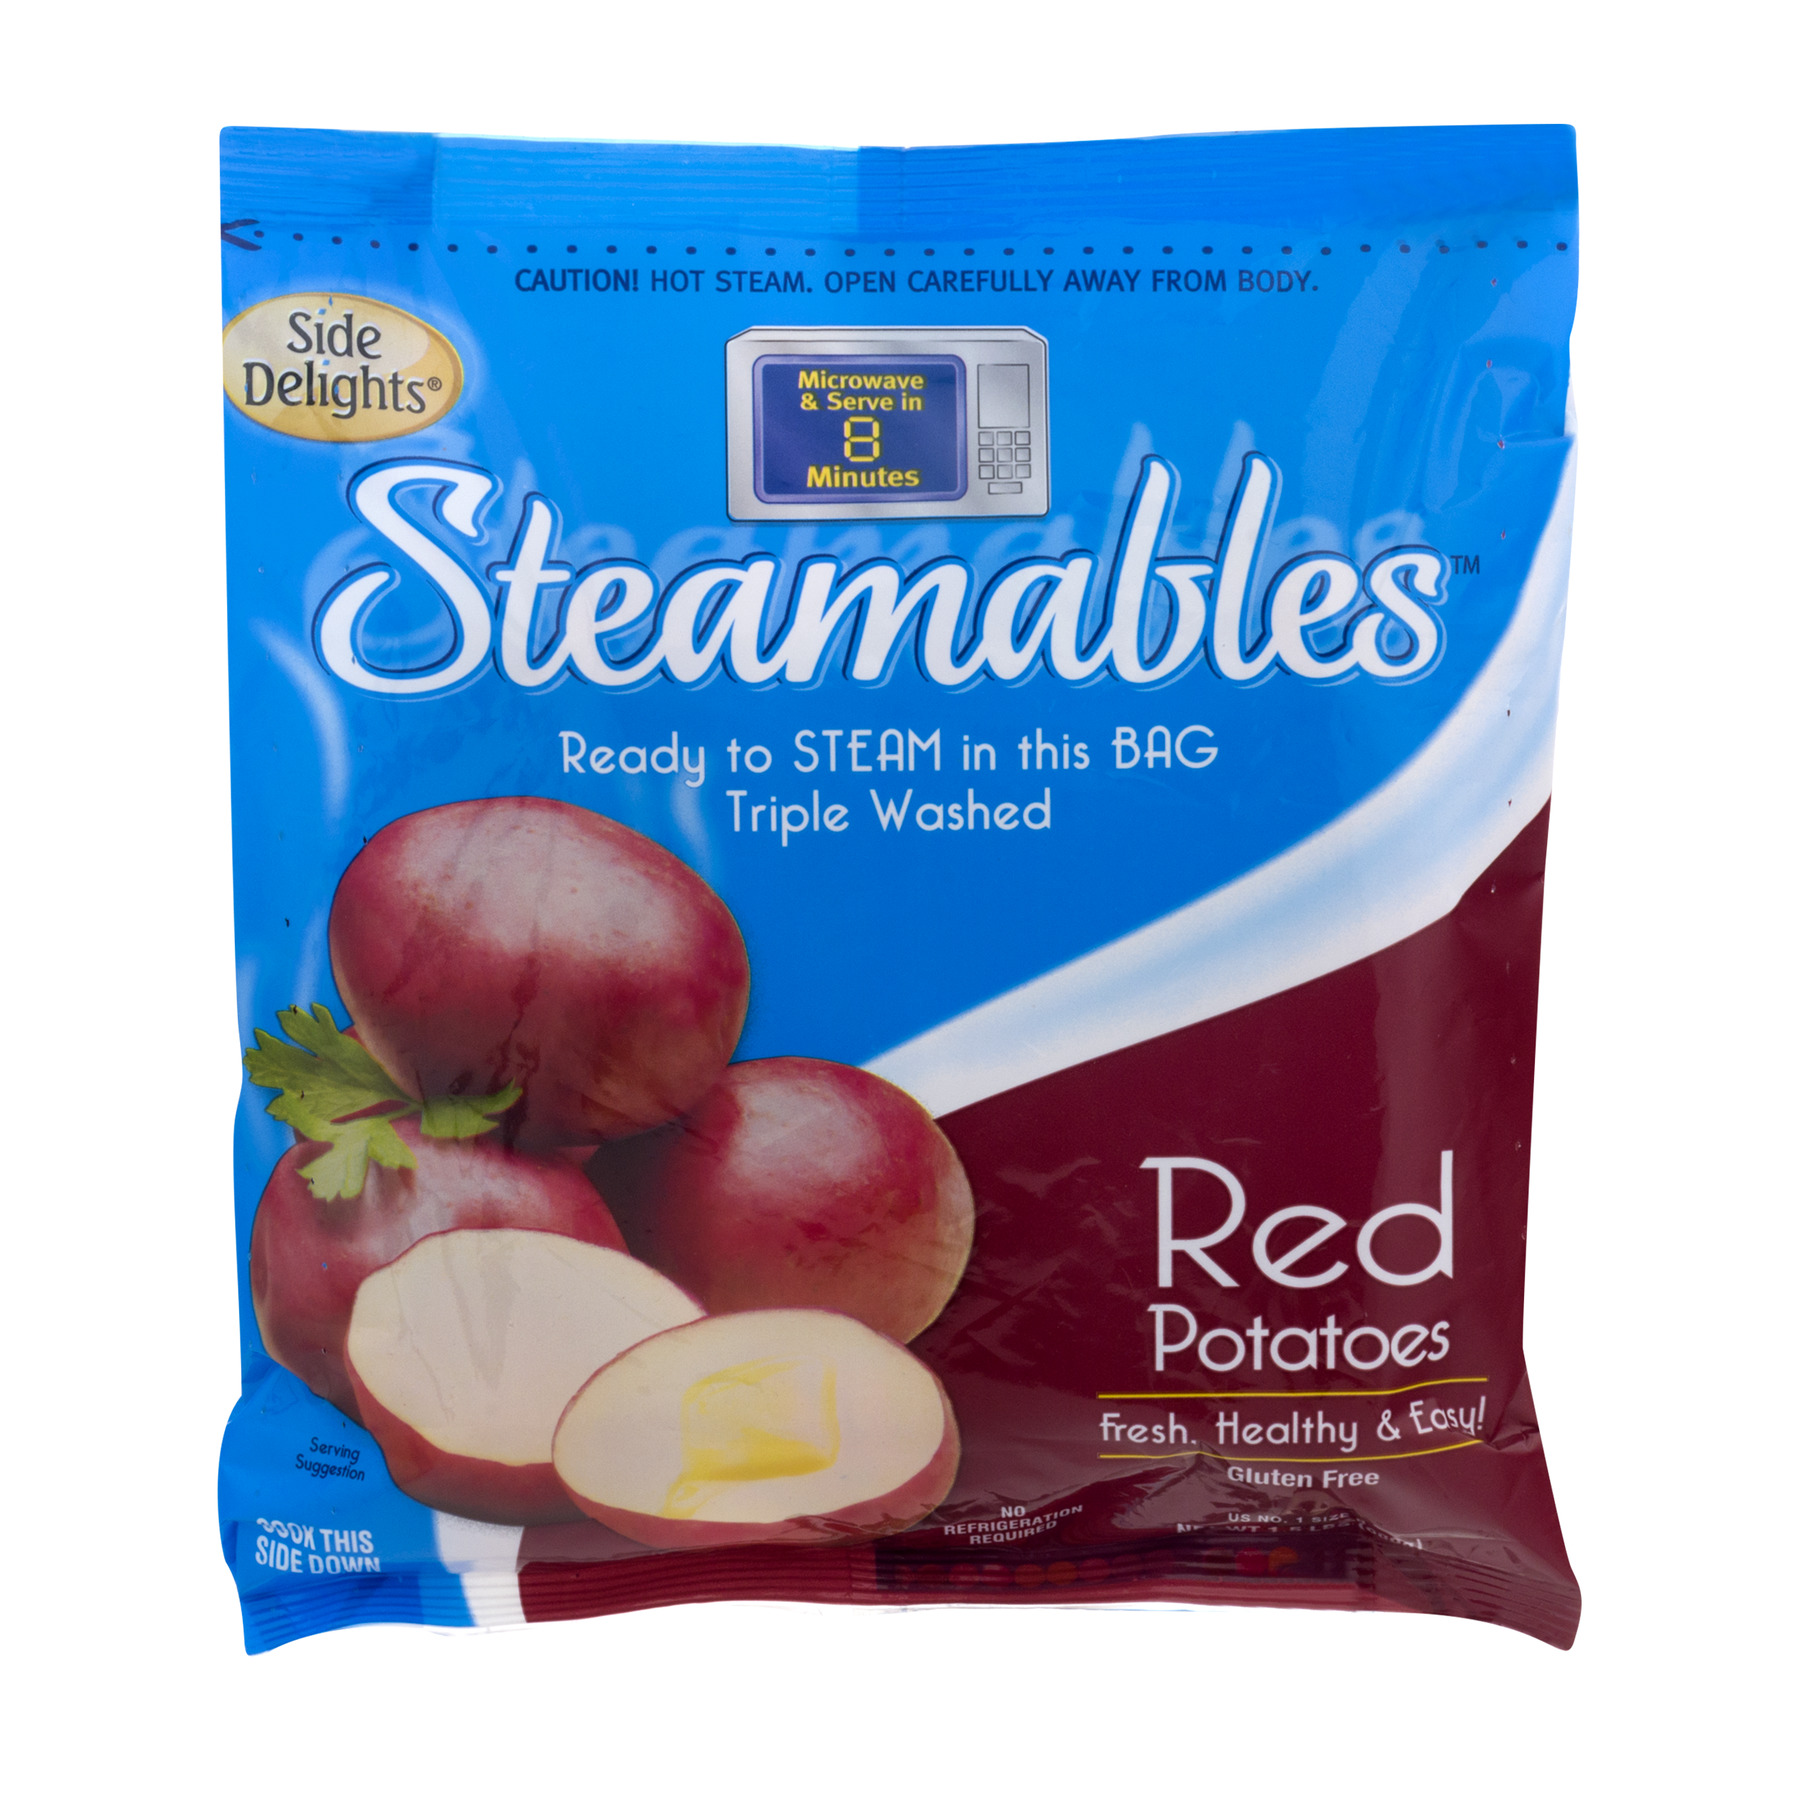 Steamables Red Baby Potatoes, 1 lb Bag